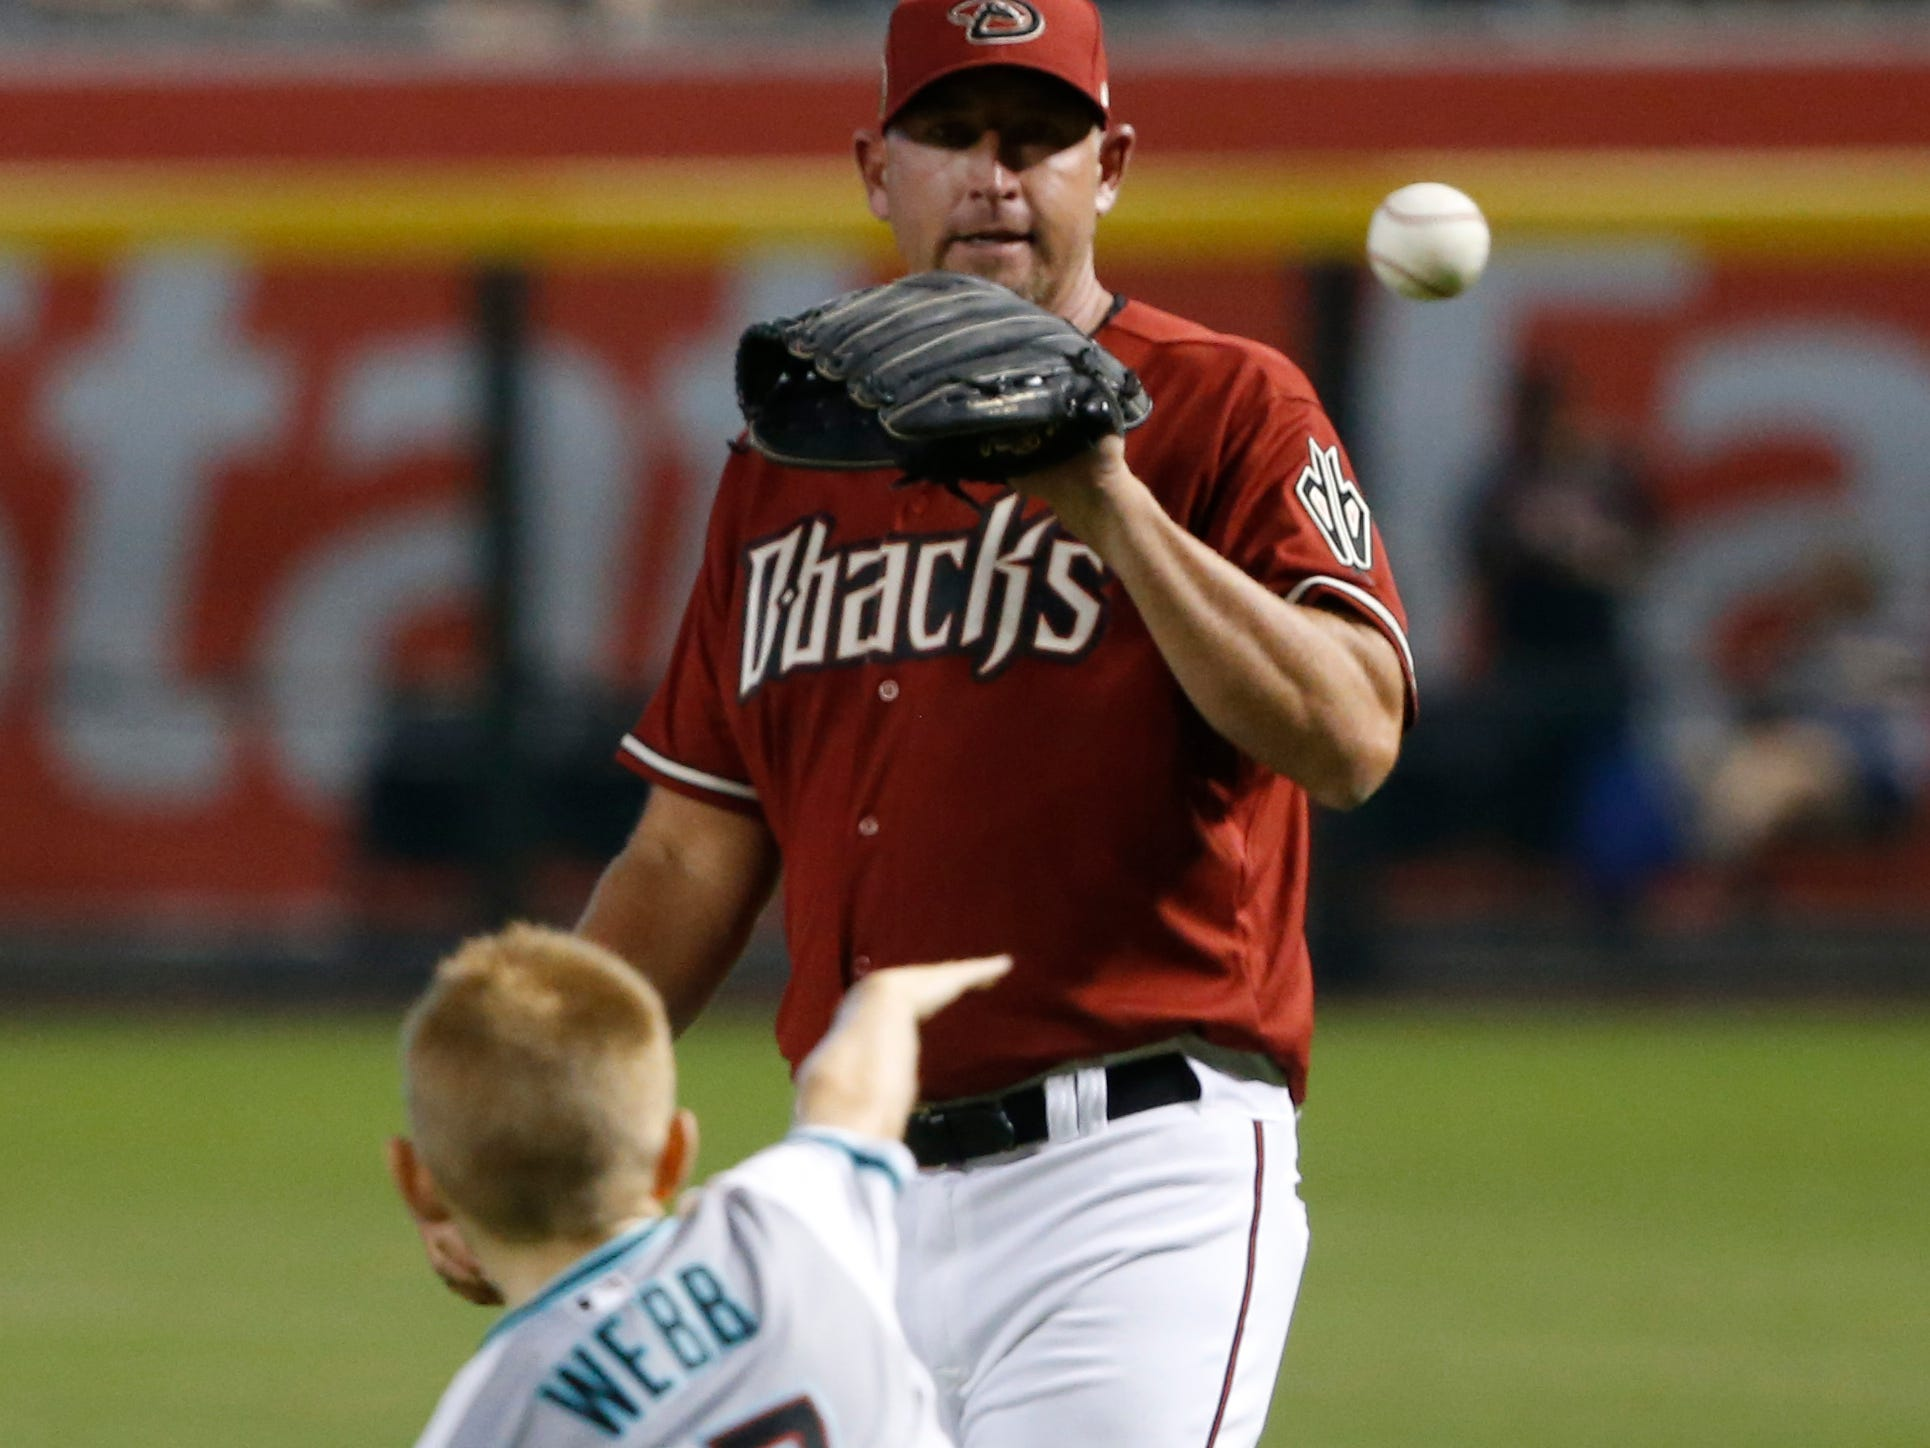 Diamondbacks Red team pitcher Brandon Webb throws the ball with his son as he warms up for the Generations Diamondbacks Alumni game at Chase Field in Phoenix, Ariz. on Aug. 4, 2018.